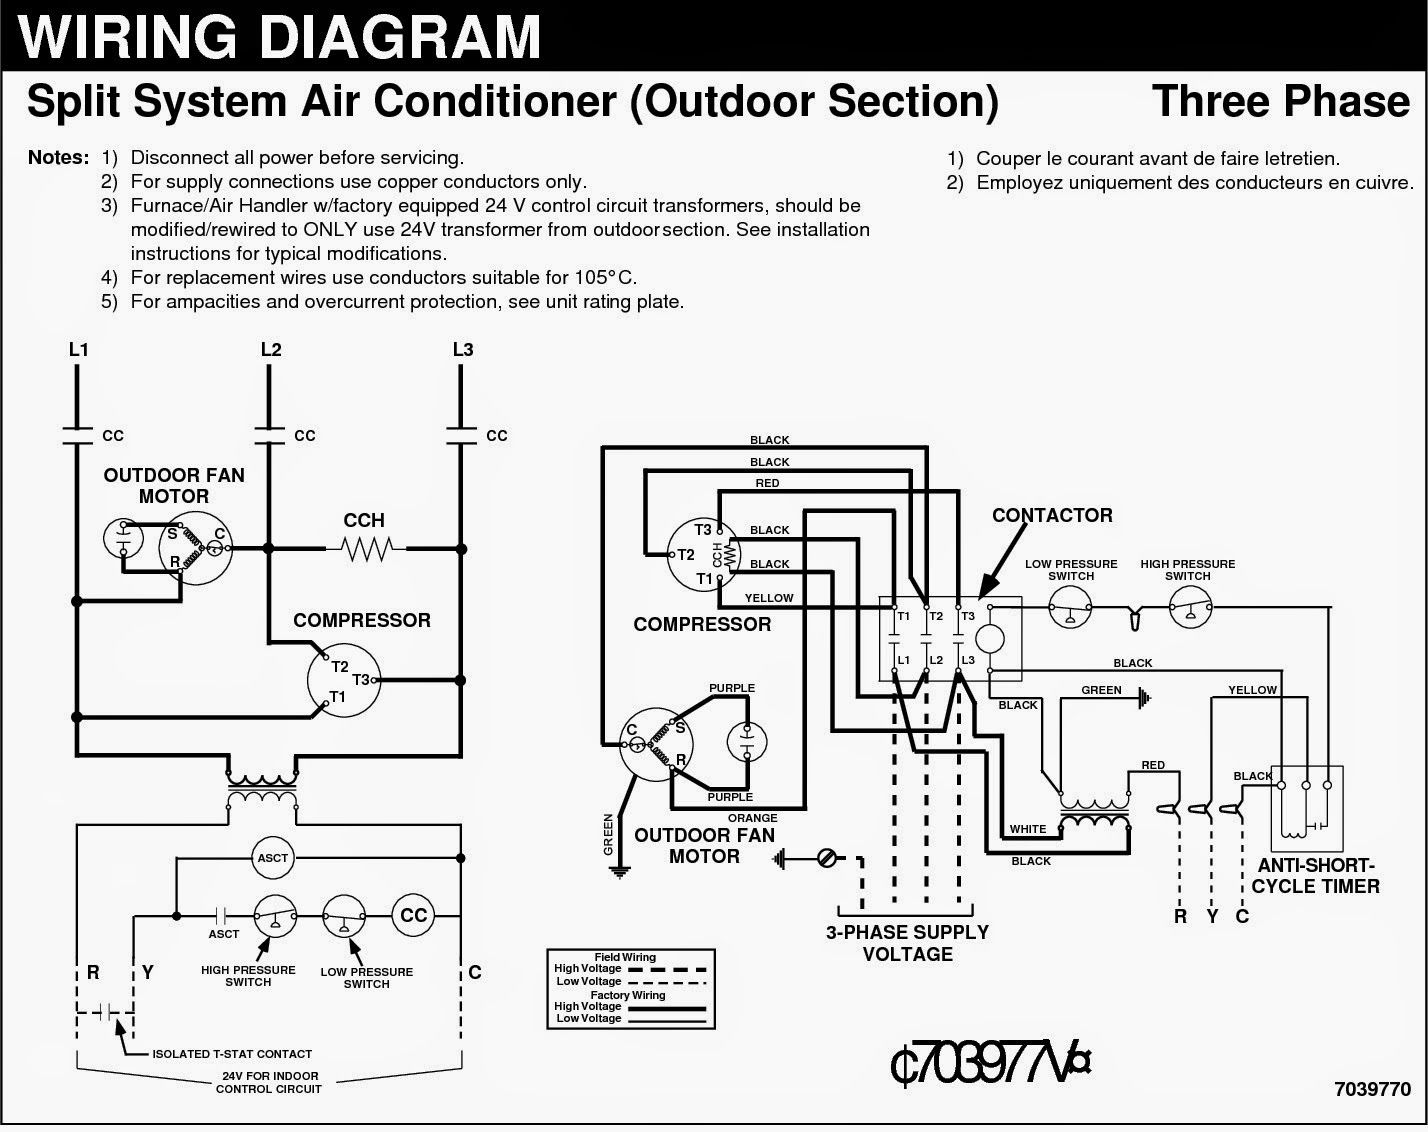 3 phase wiring diagram for house wiring diagram electrical Air Conditioning Funny Sayings